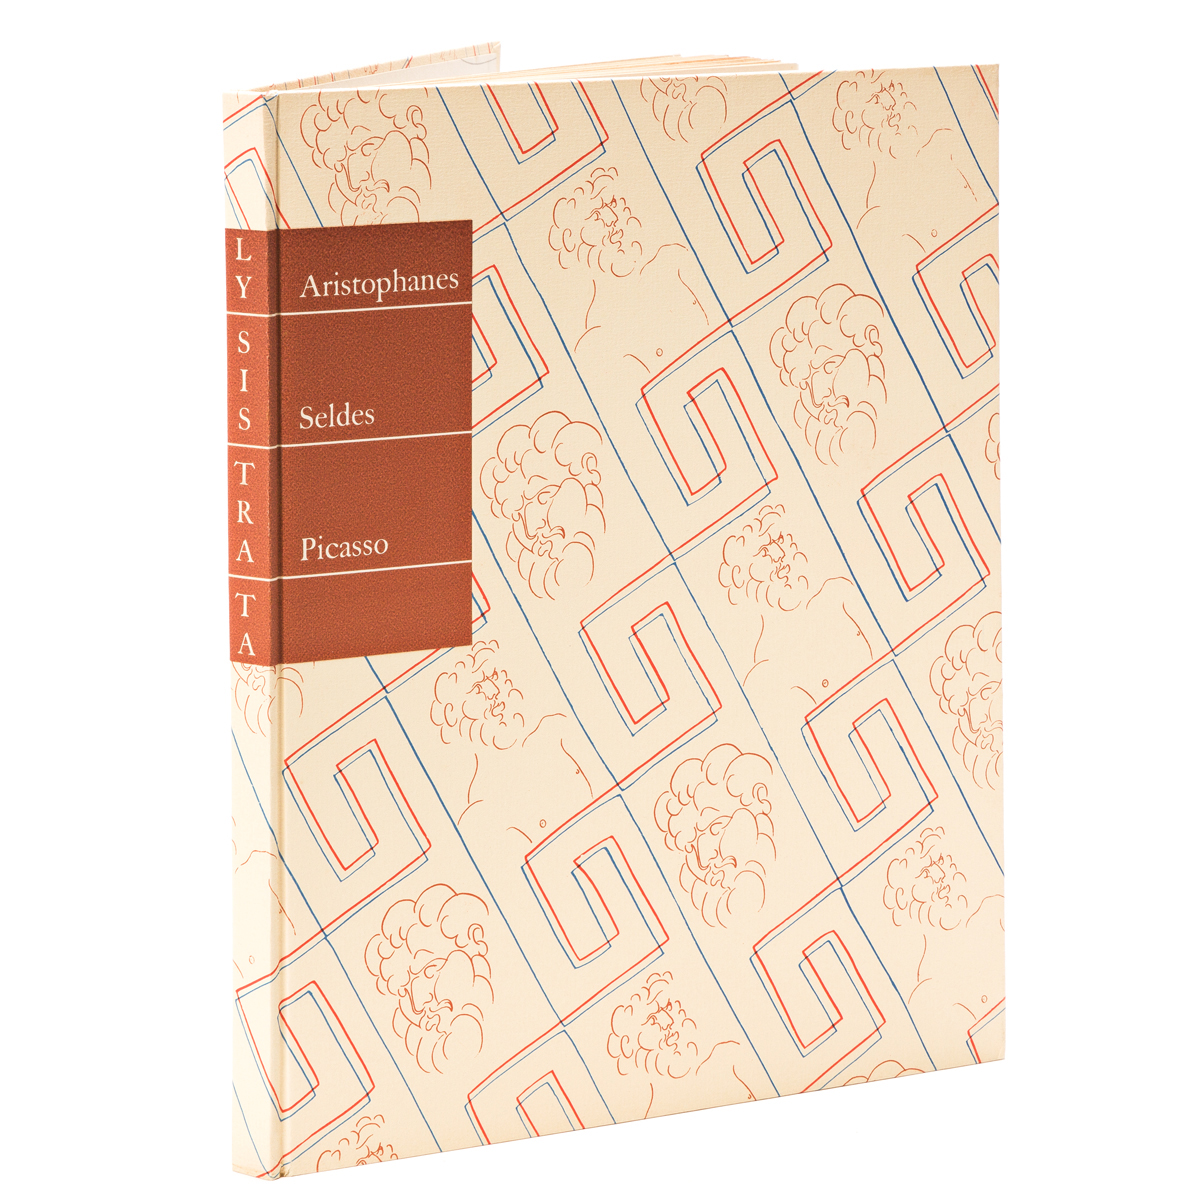 (LIMITED EDITIONS CLUB.) Picasso, Pablo and Aristophanes. Lysistrata: A New Version by Gilbert Seldes.